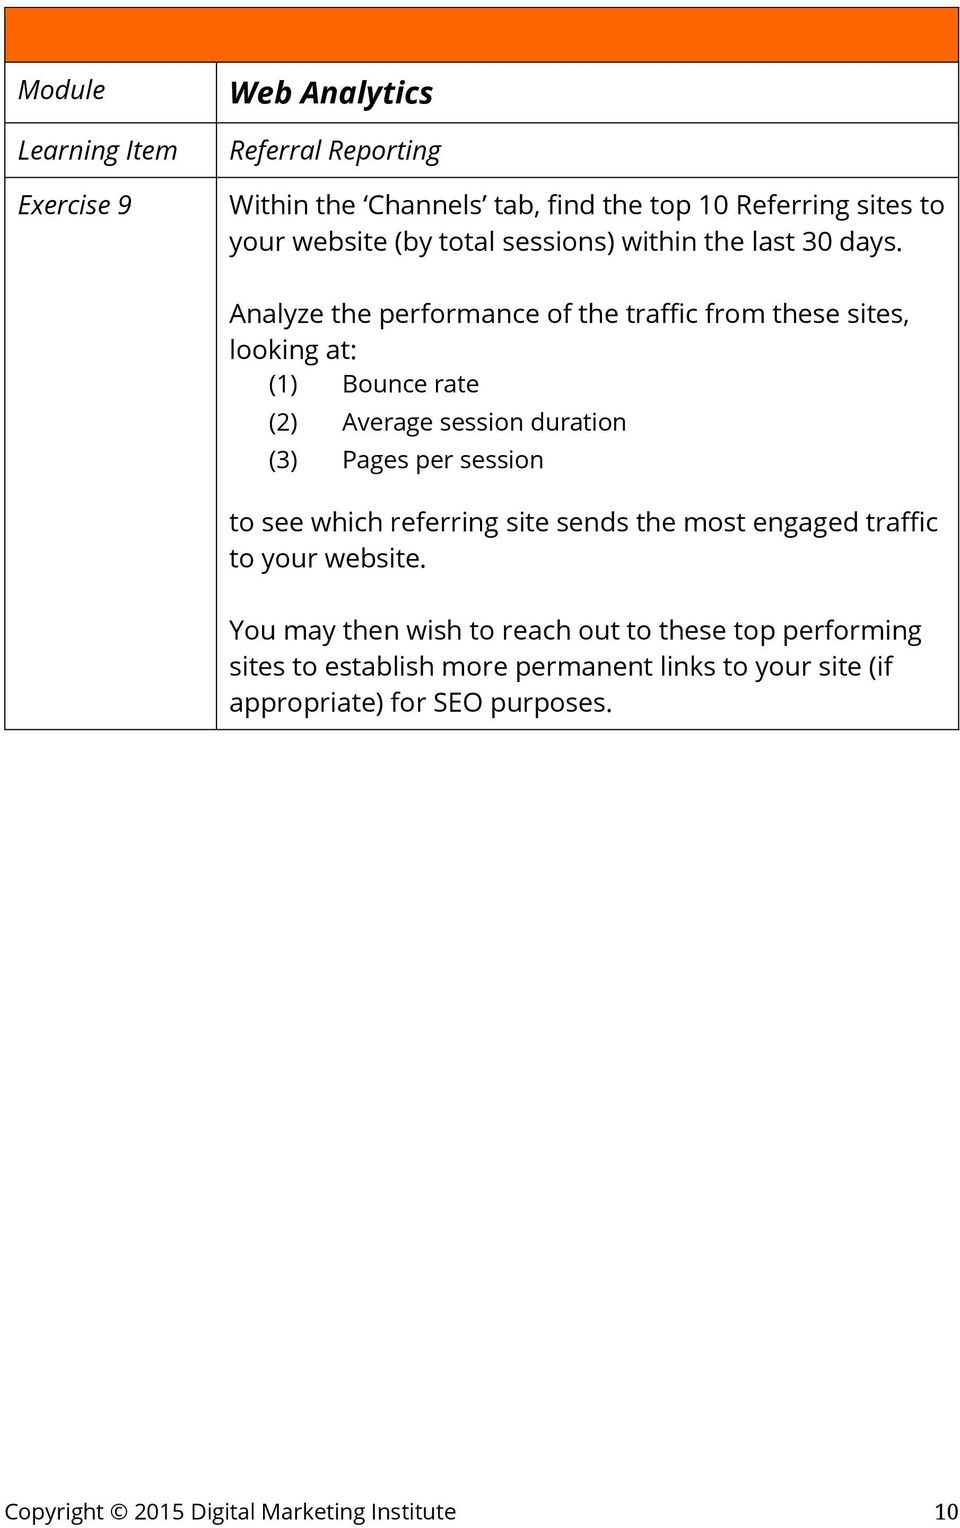 Analyze the performance of the traffic from these sites, looking at: (1) Bounce rate (2) Average session duration (3) Pages per session